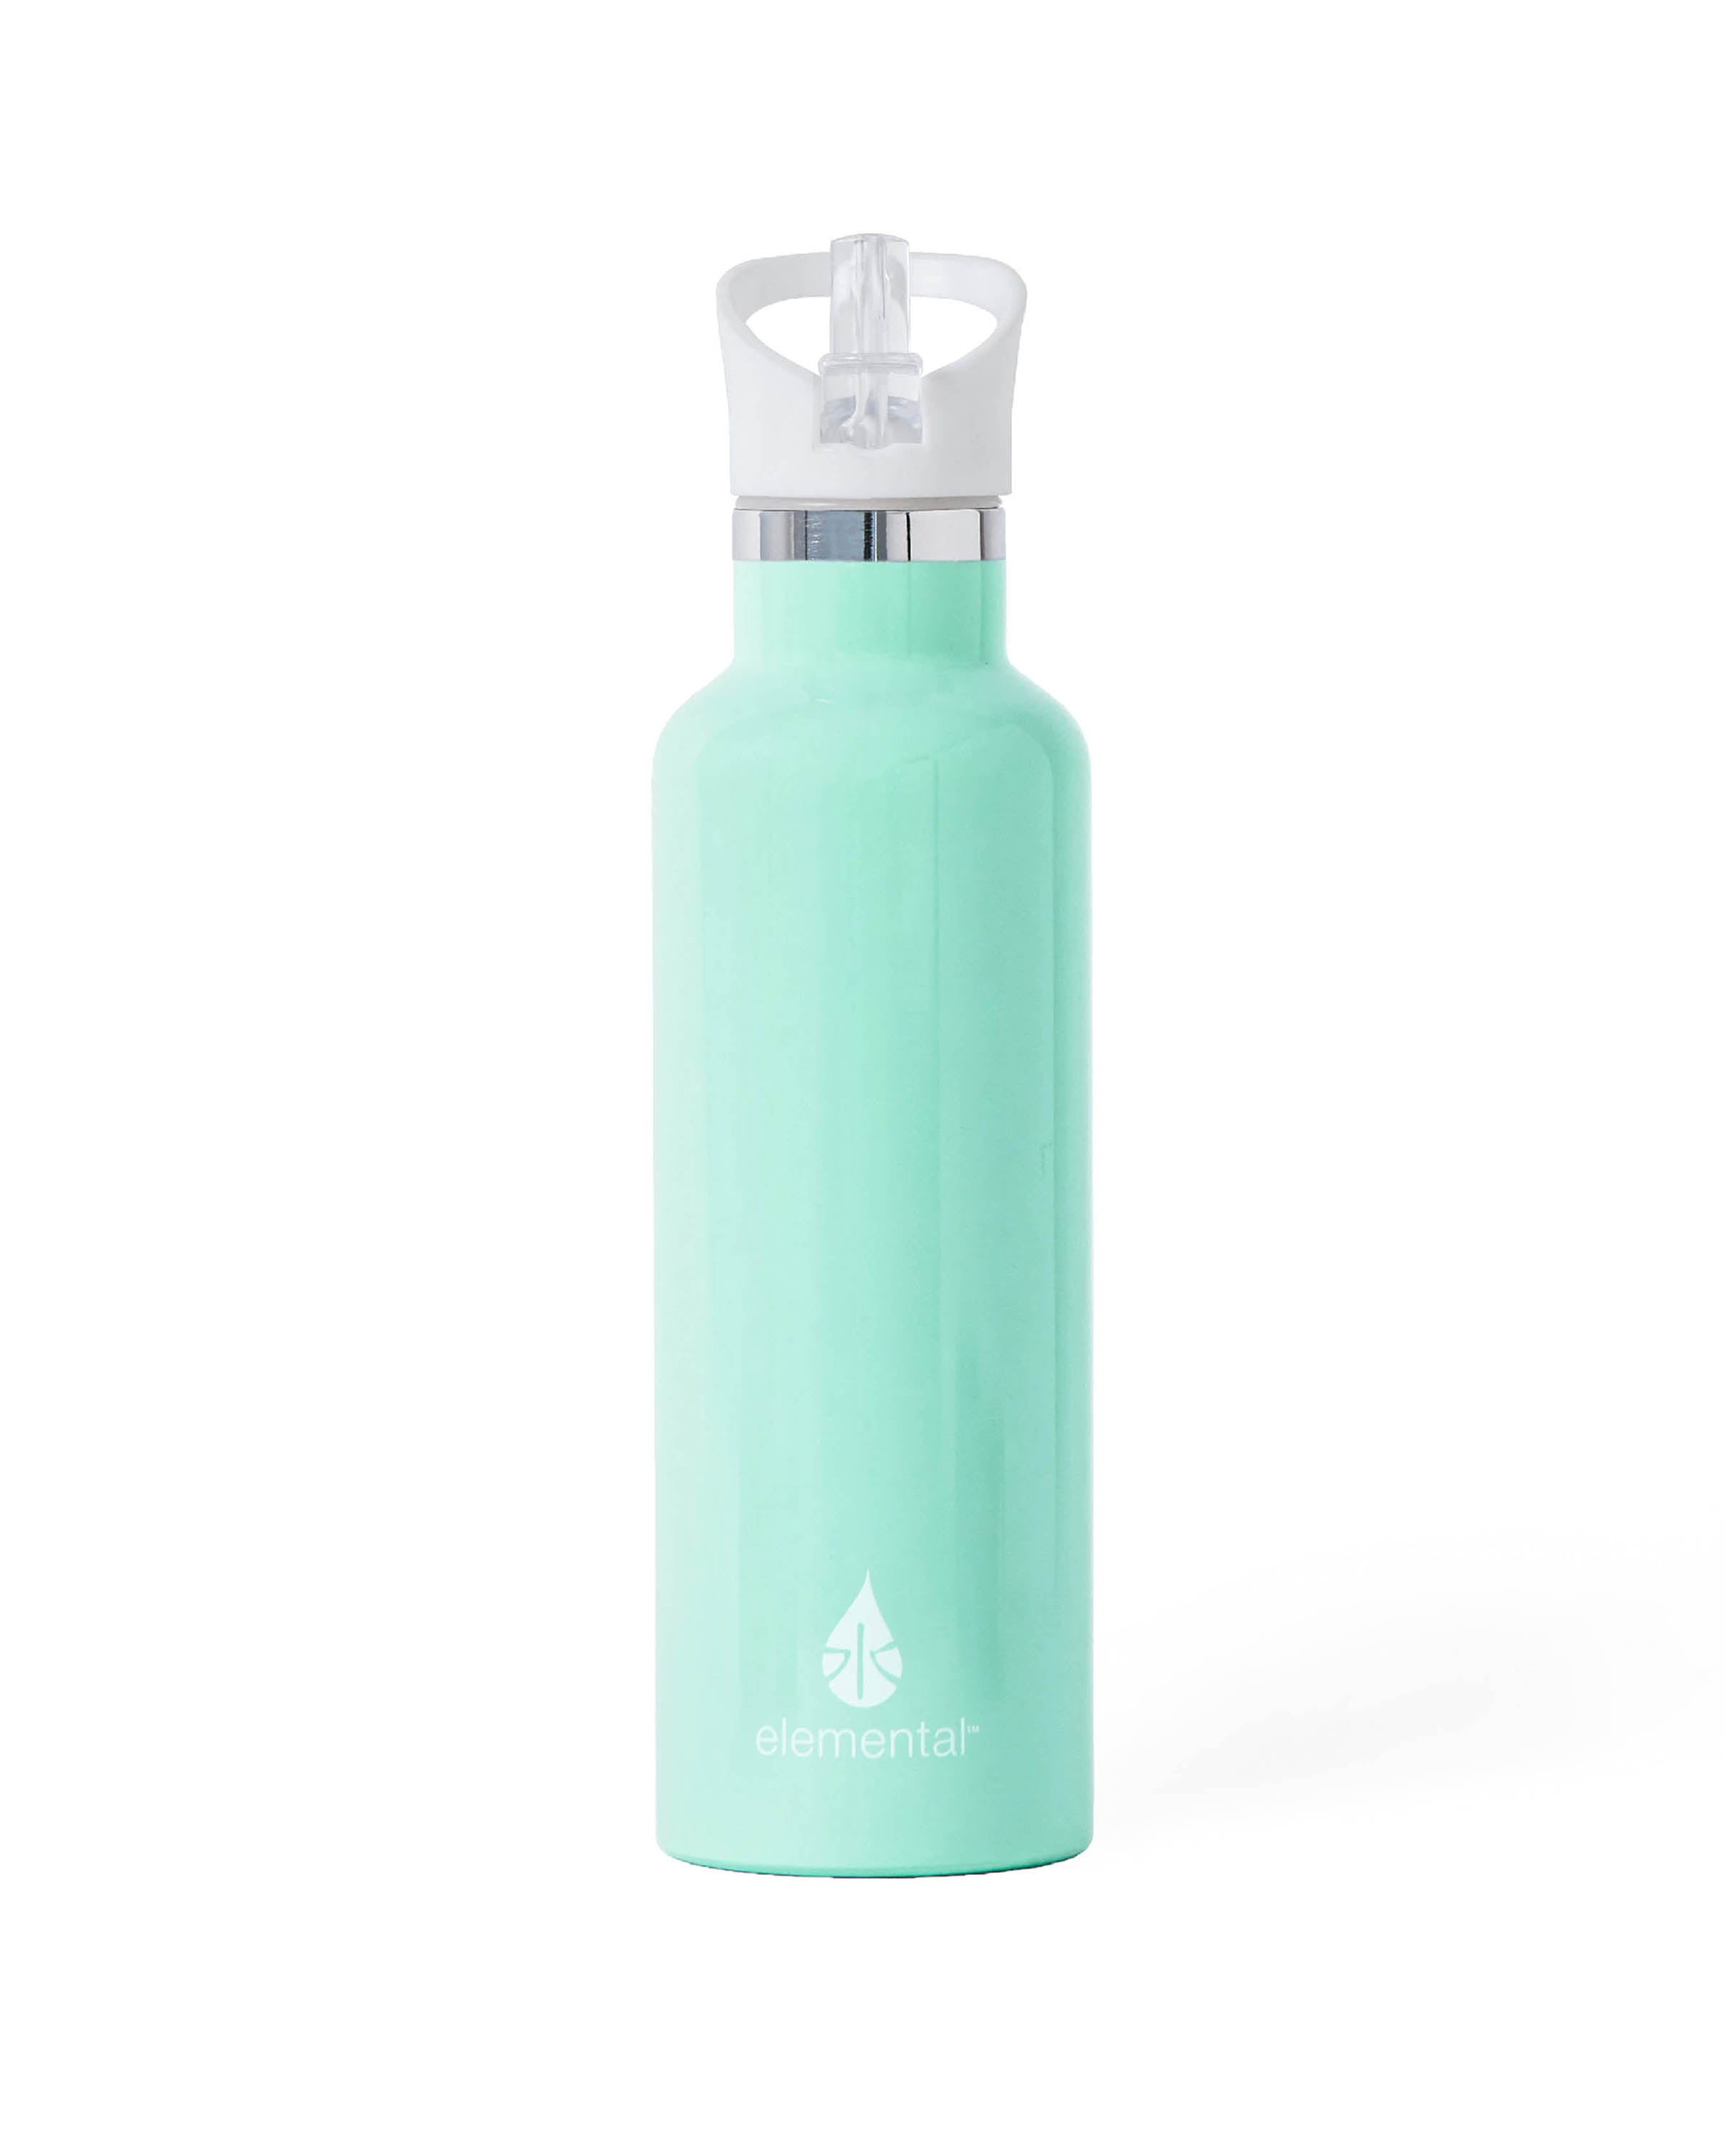 Elemental Stainless Steel Water Bottle 25oz (750ml) - Sports Cap